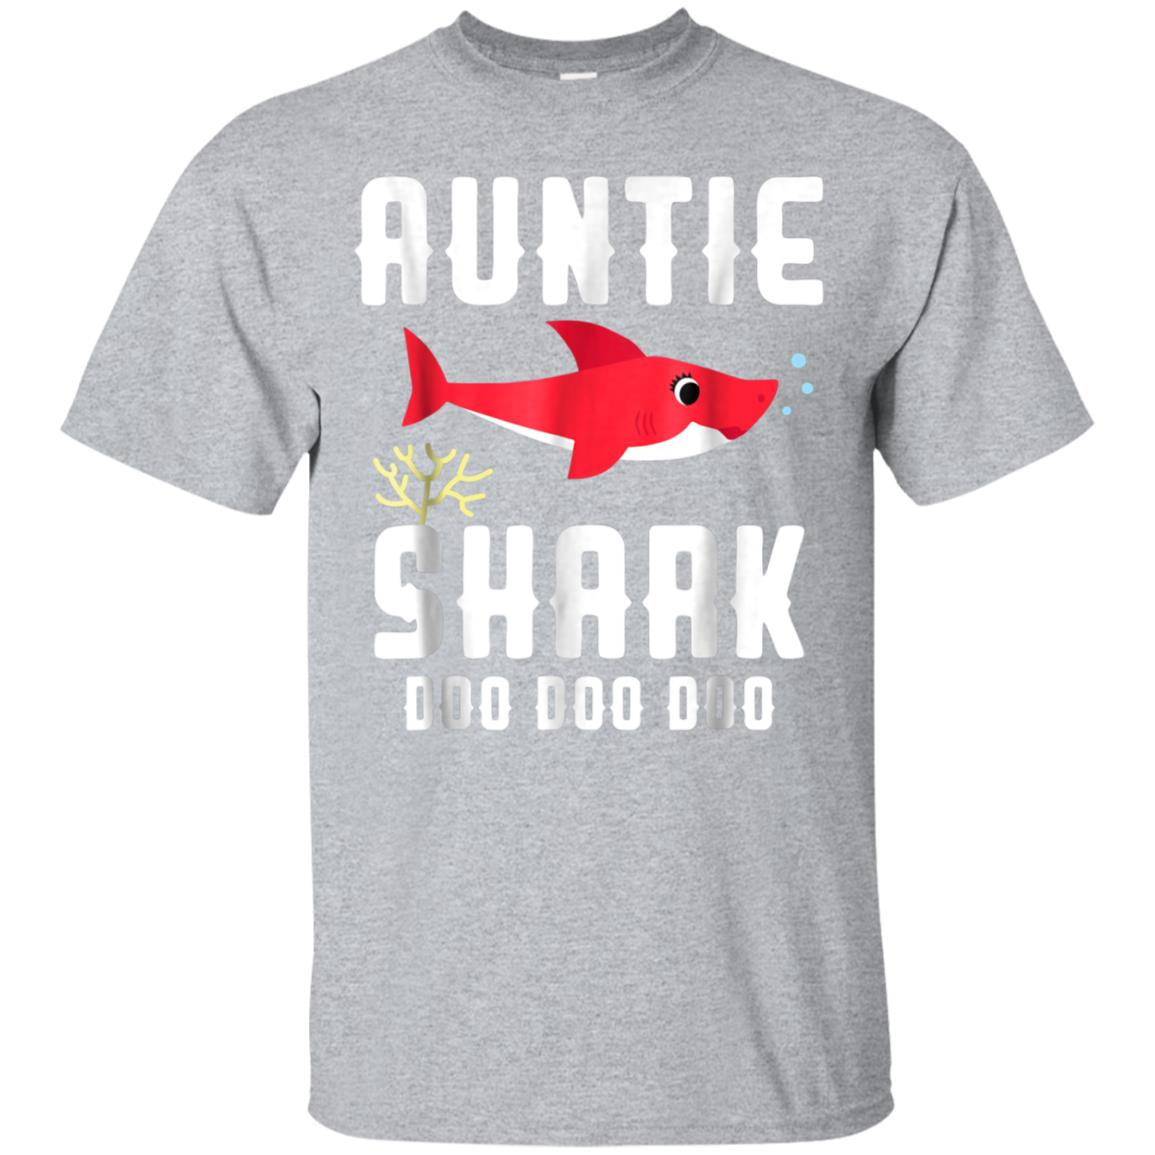 Auntie Shark Shirt for Birthday Halloween Christmas 99promocode